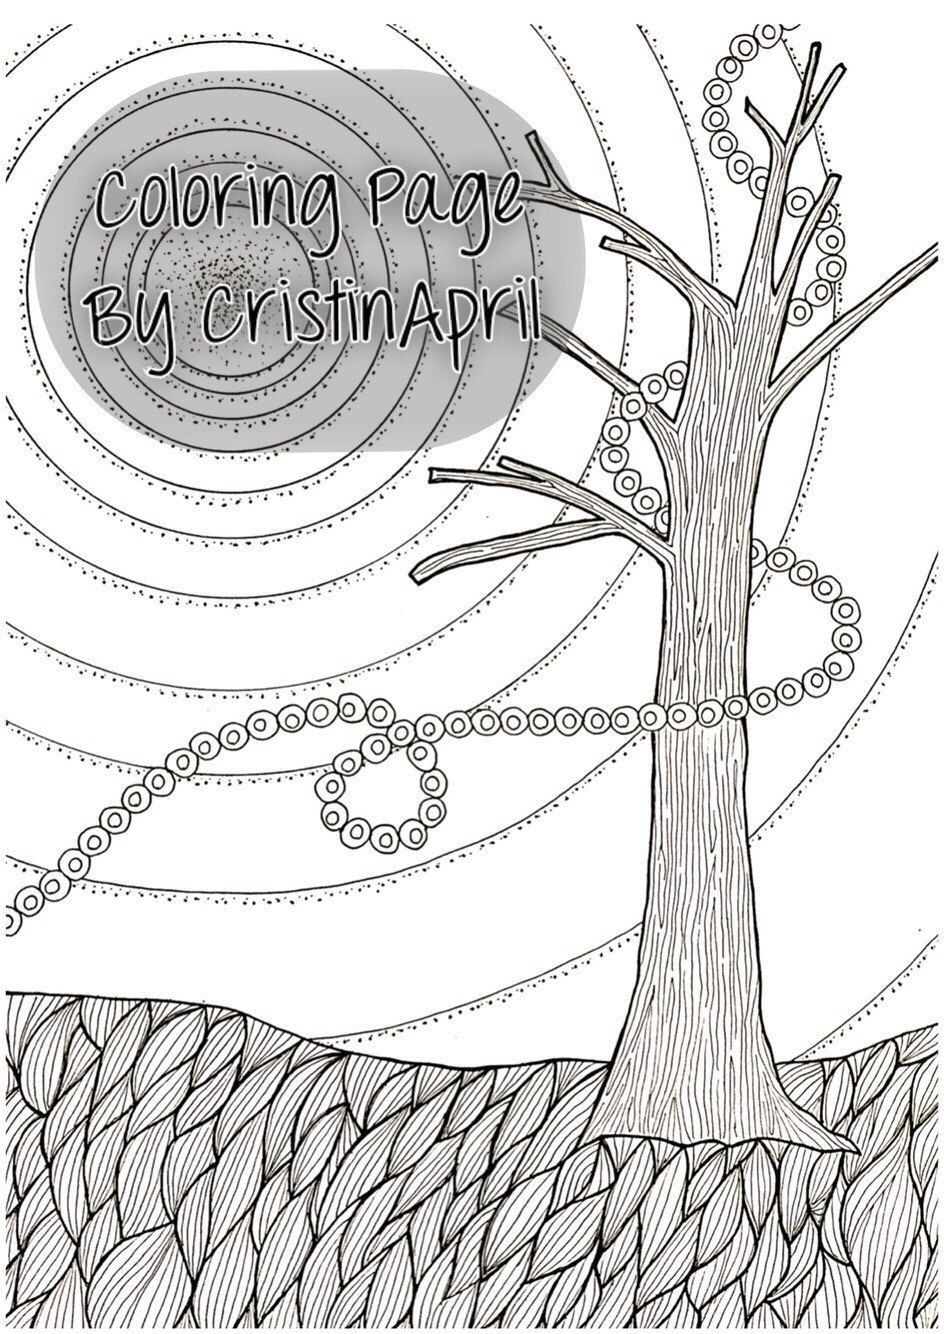 Printable coloring pages etsy - Printable Coloring Page Tree Breeze Digital Download By Cristinapril On Etsy Https